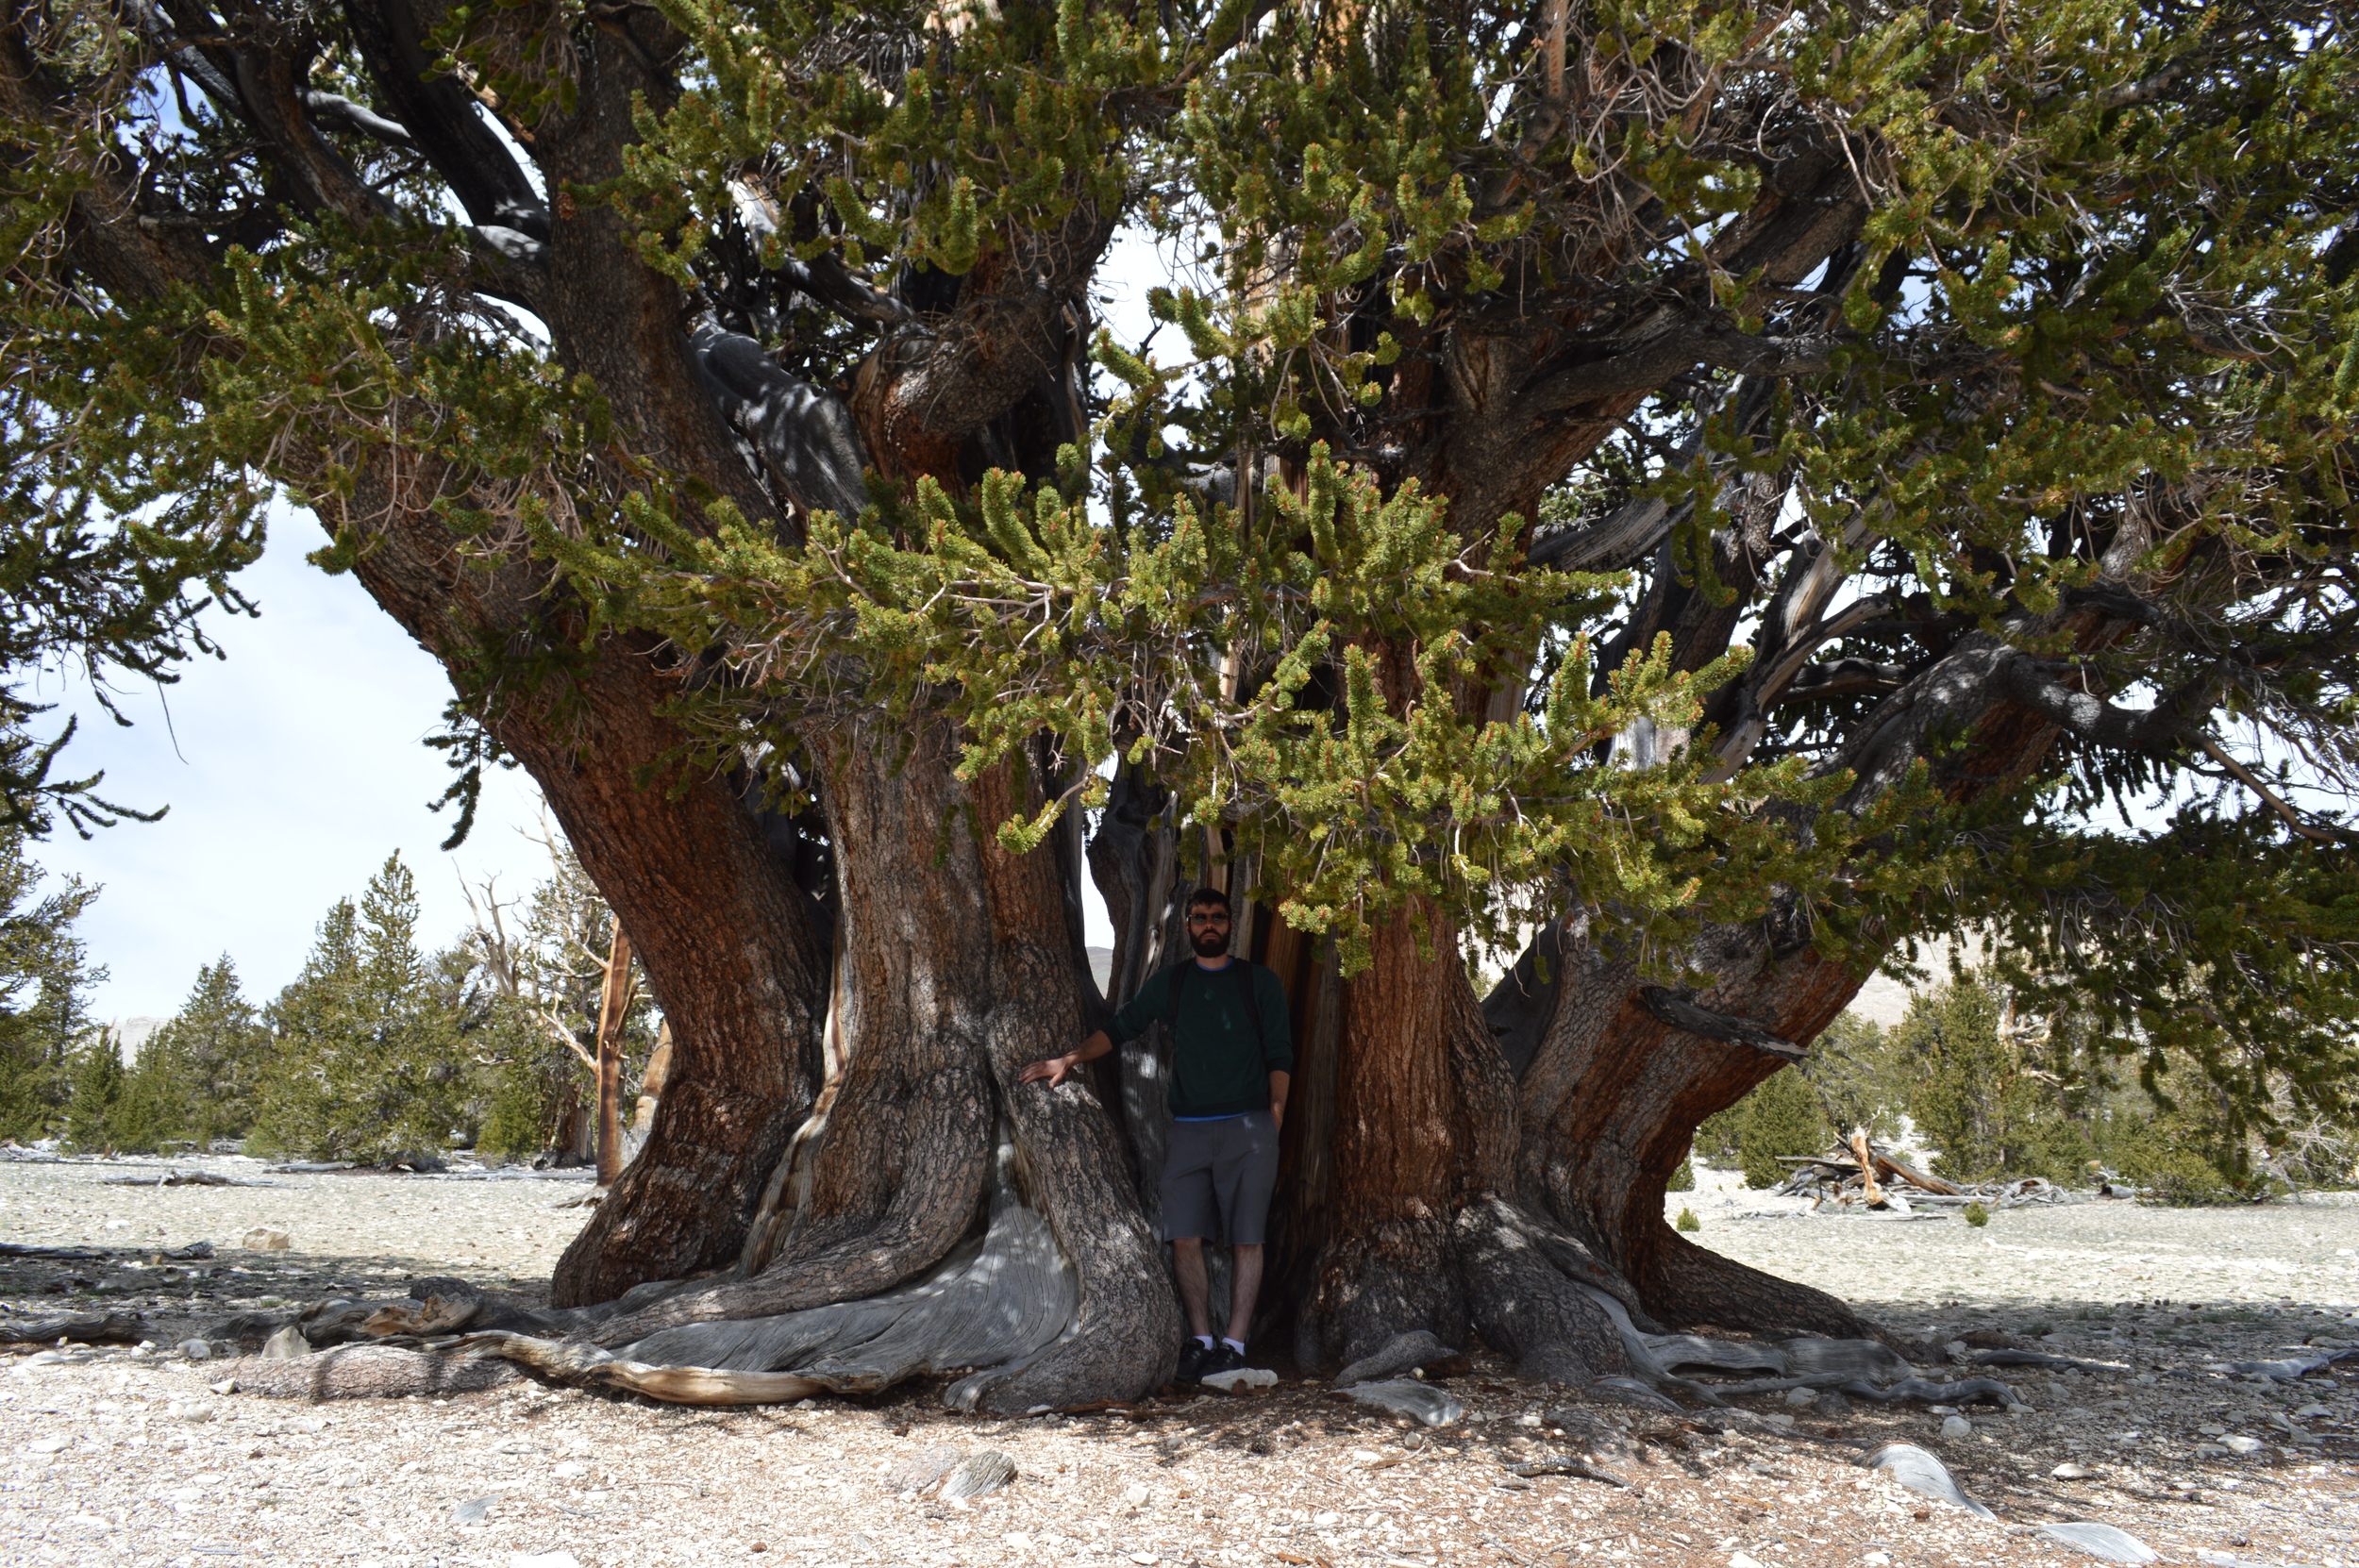 Patriarch Tree, 1500yrs, Patriarch Grove - The remote White Mountains of the Inyo National Forest.